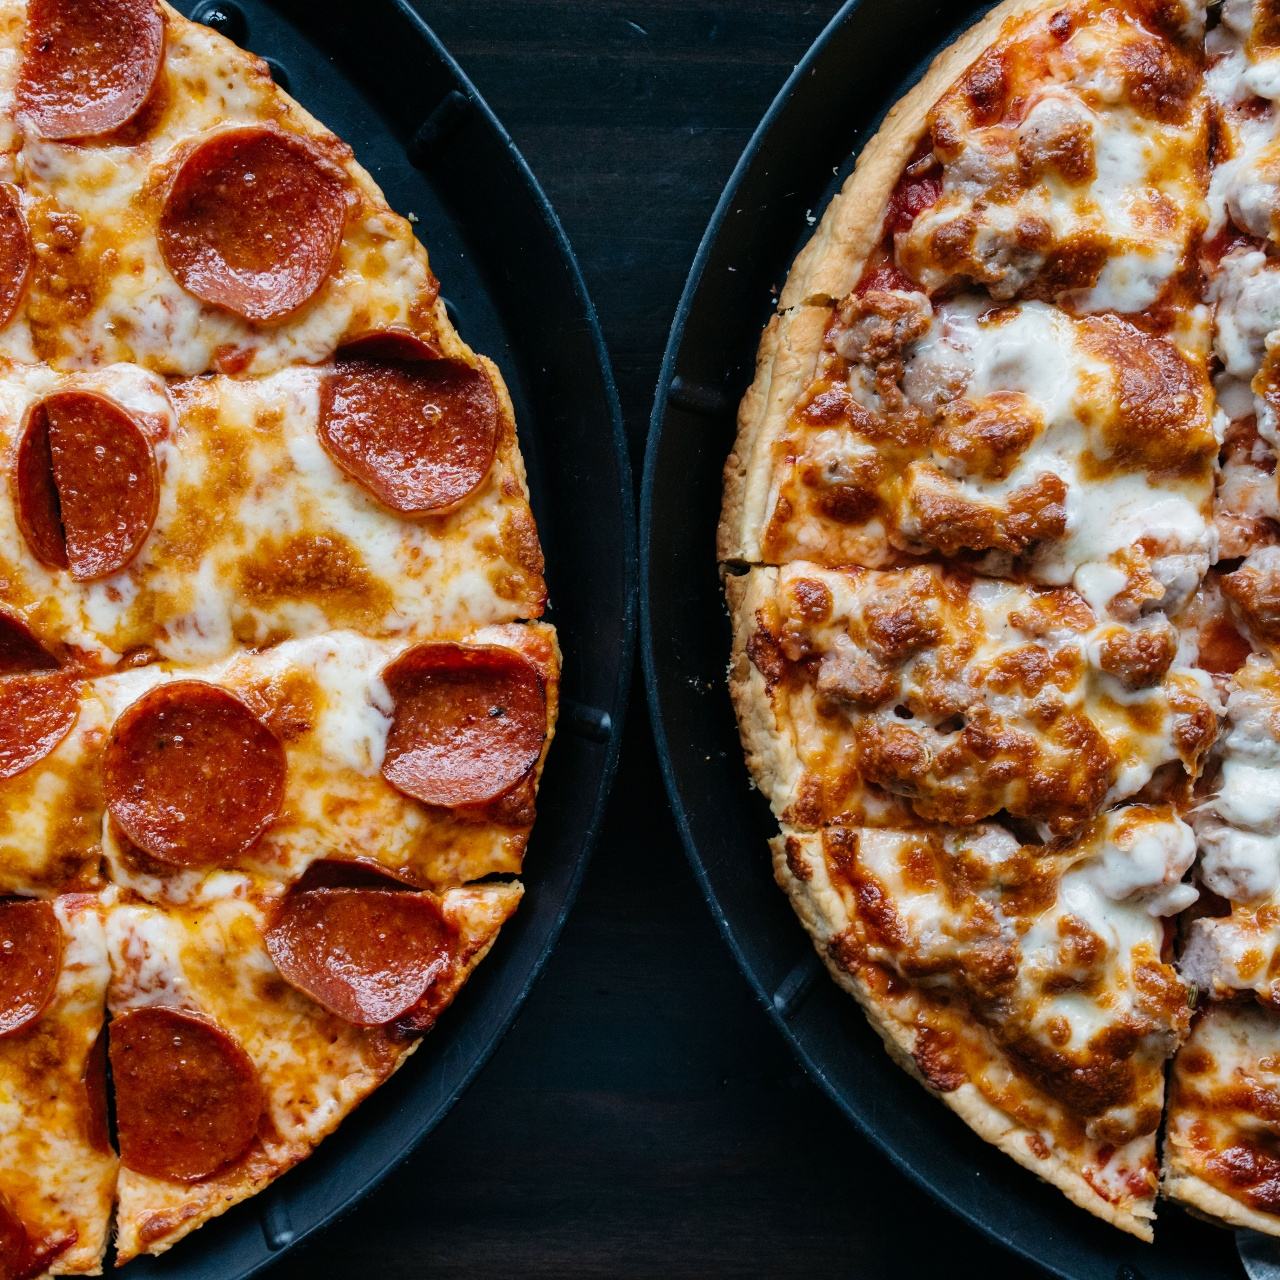 hri pepperoni pizza and sausage pizza